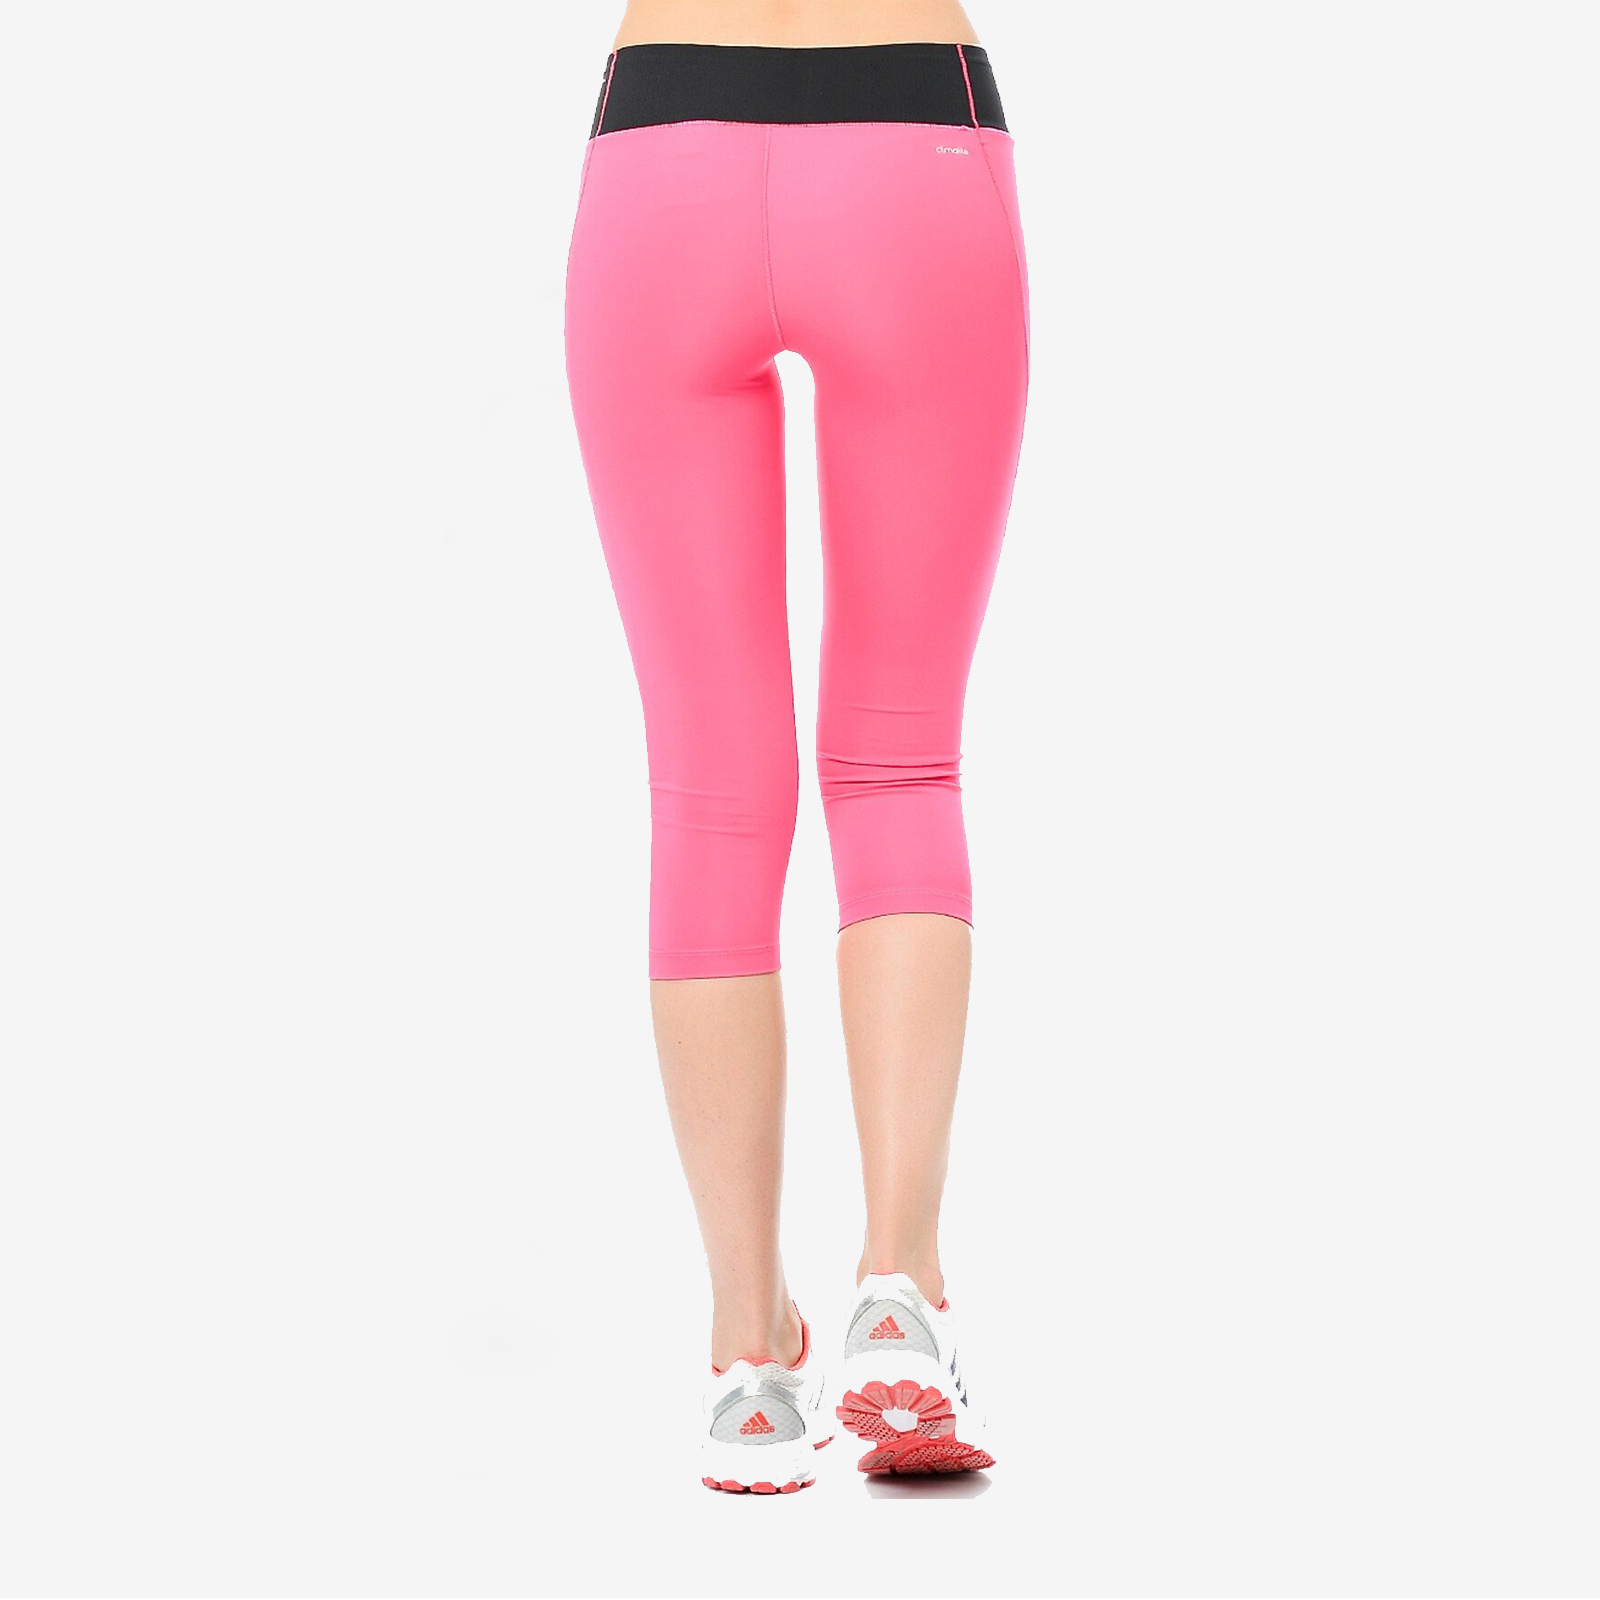 AJ5028-Add-wo-34-tight-pembe-kadin-kapri-637105570556488750.jpg